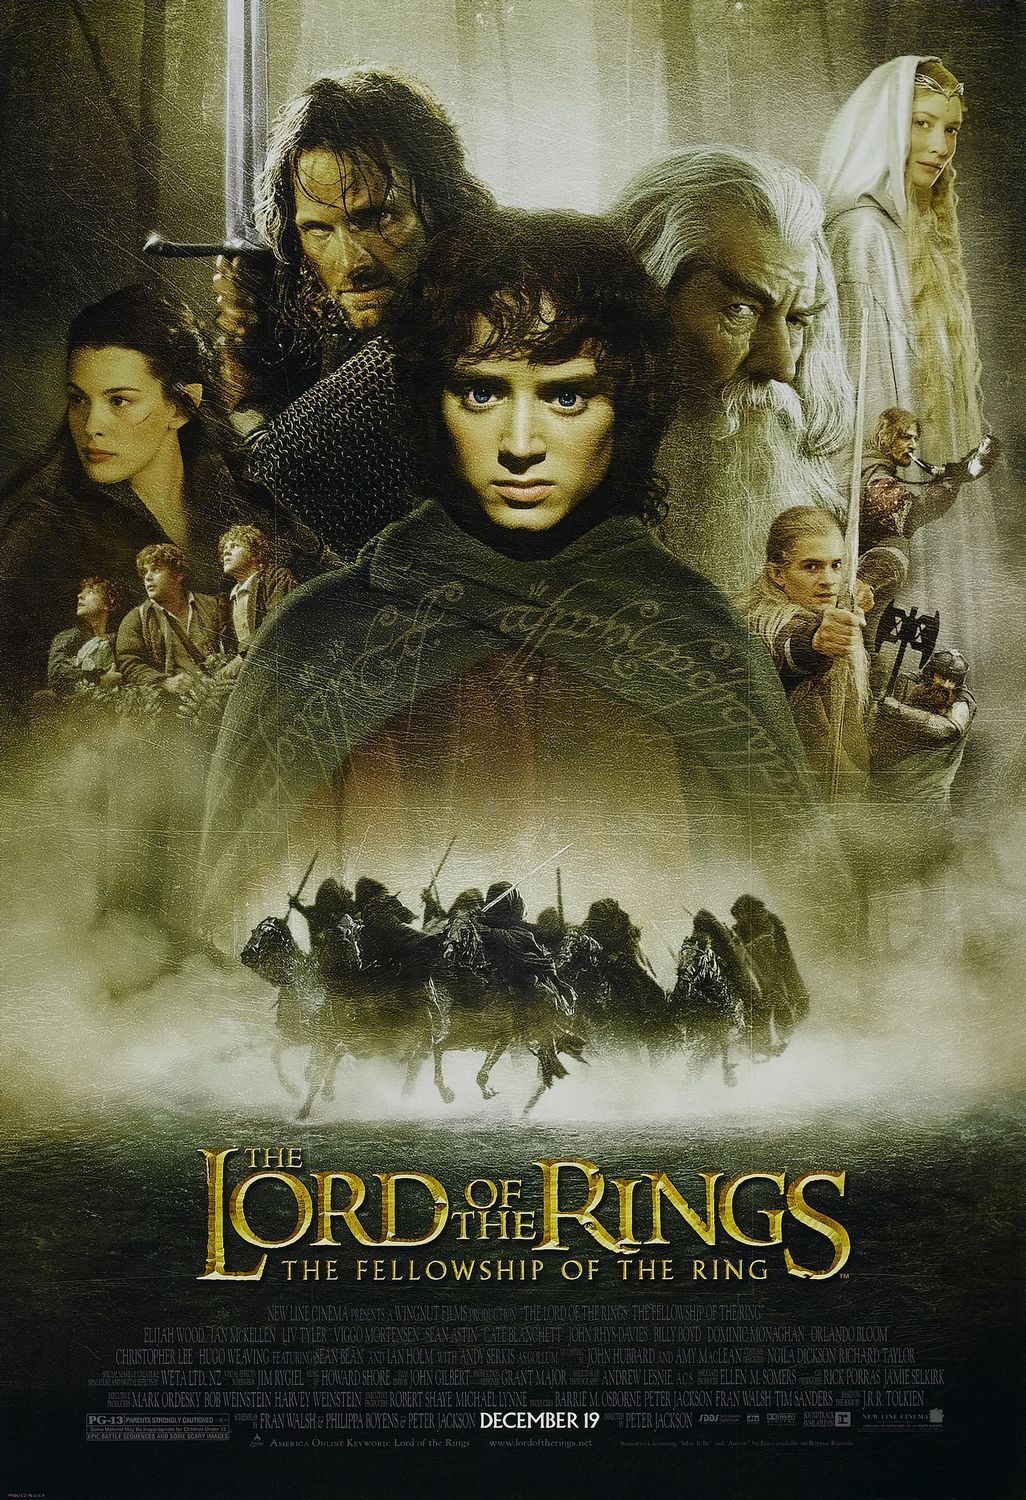 The Swordplay of Lord of the Rings